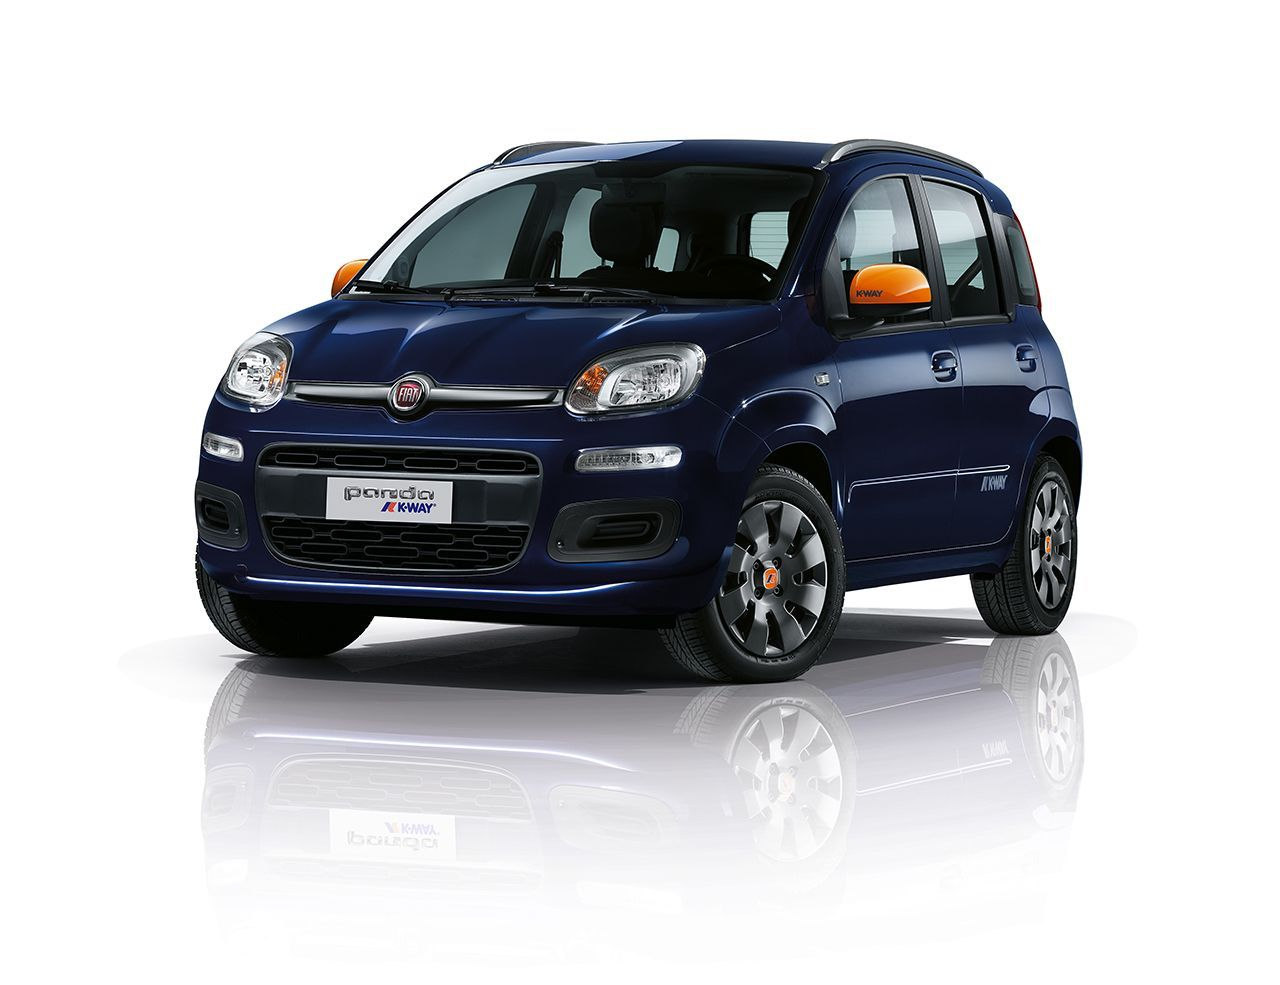 fiat panda k way 2015 habill e pour affronter vent et mar es l 39 argus. Black Bedroom Furniture Sets. Home Design Ideas